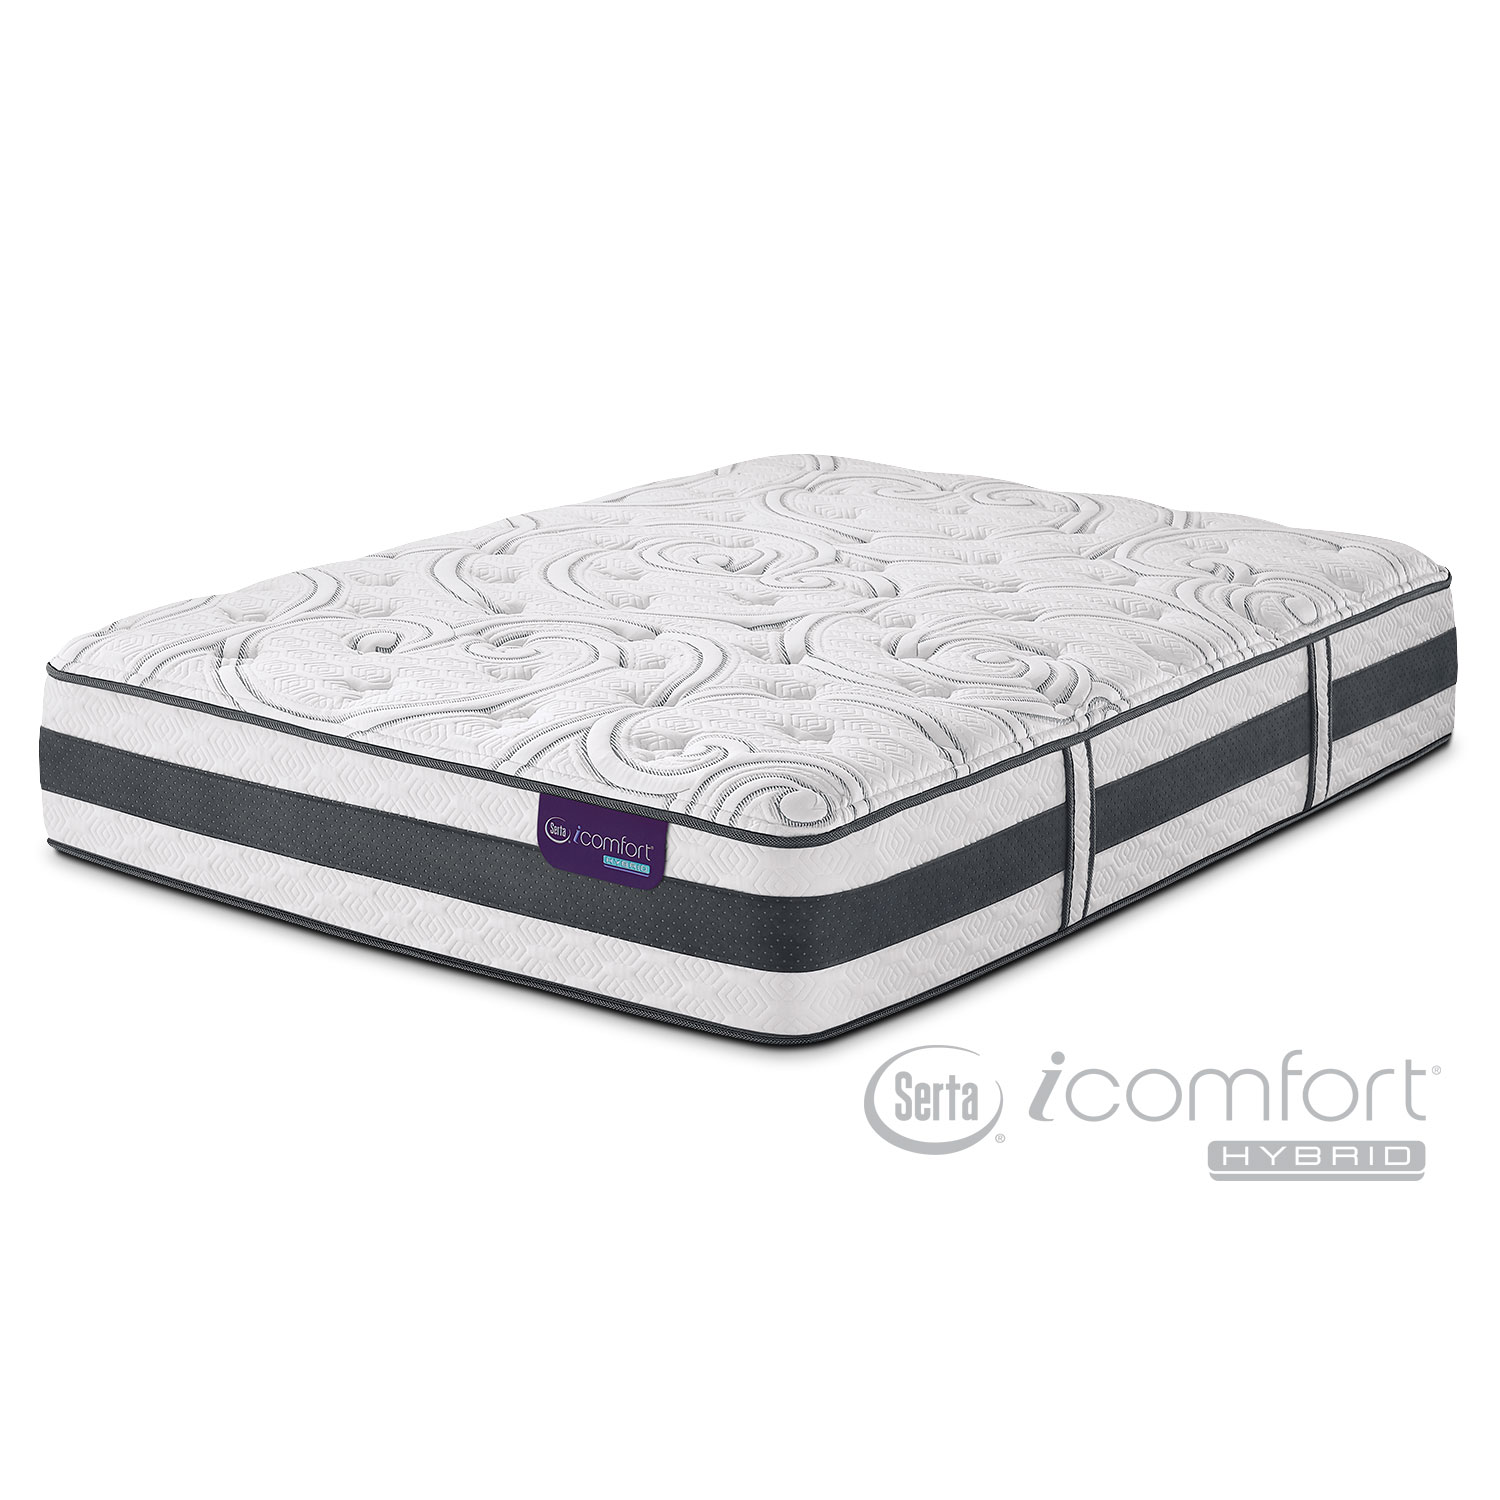 Recognition California King Mattress